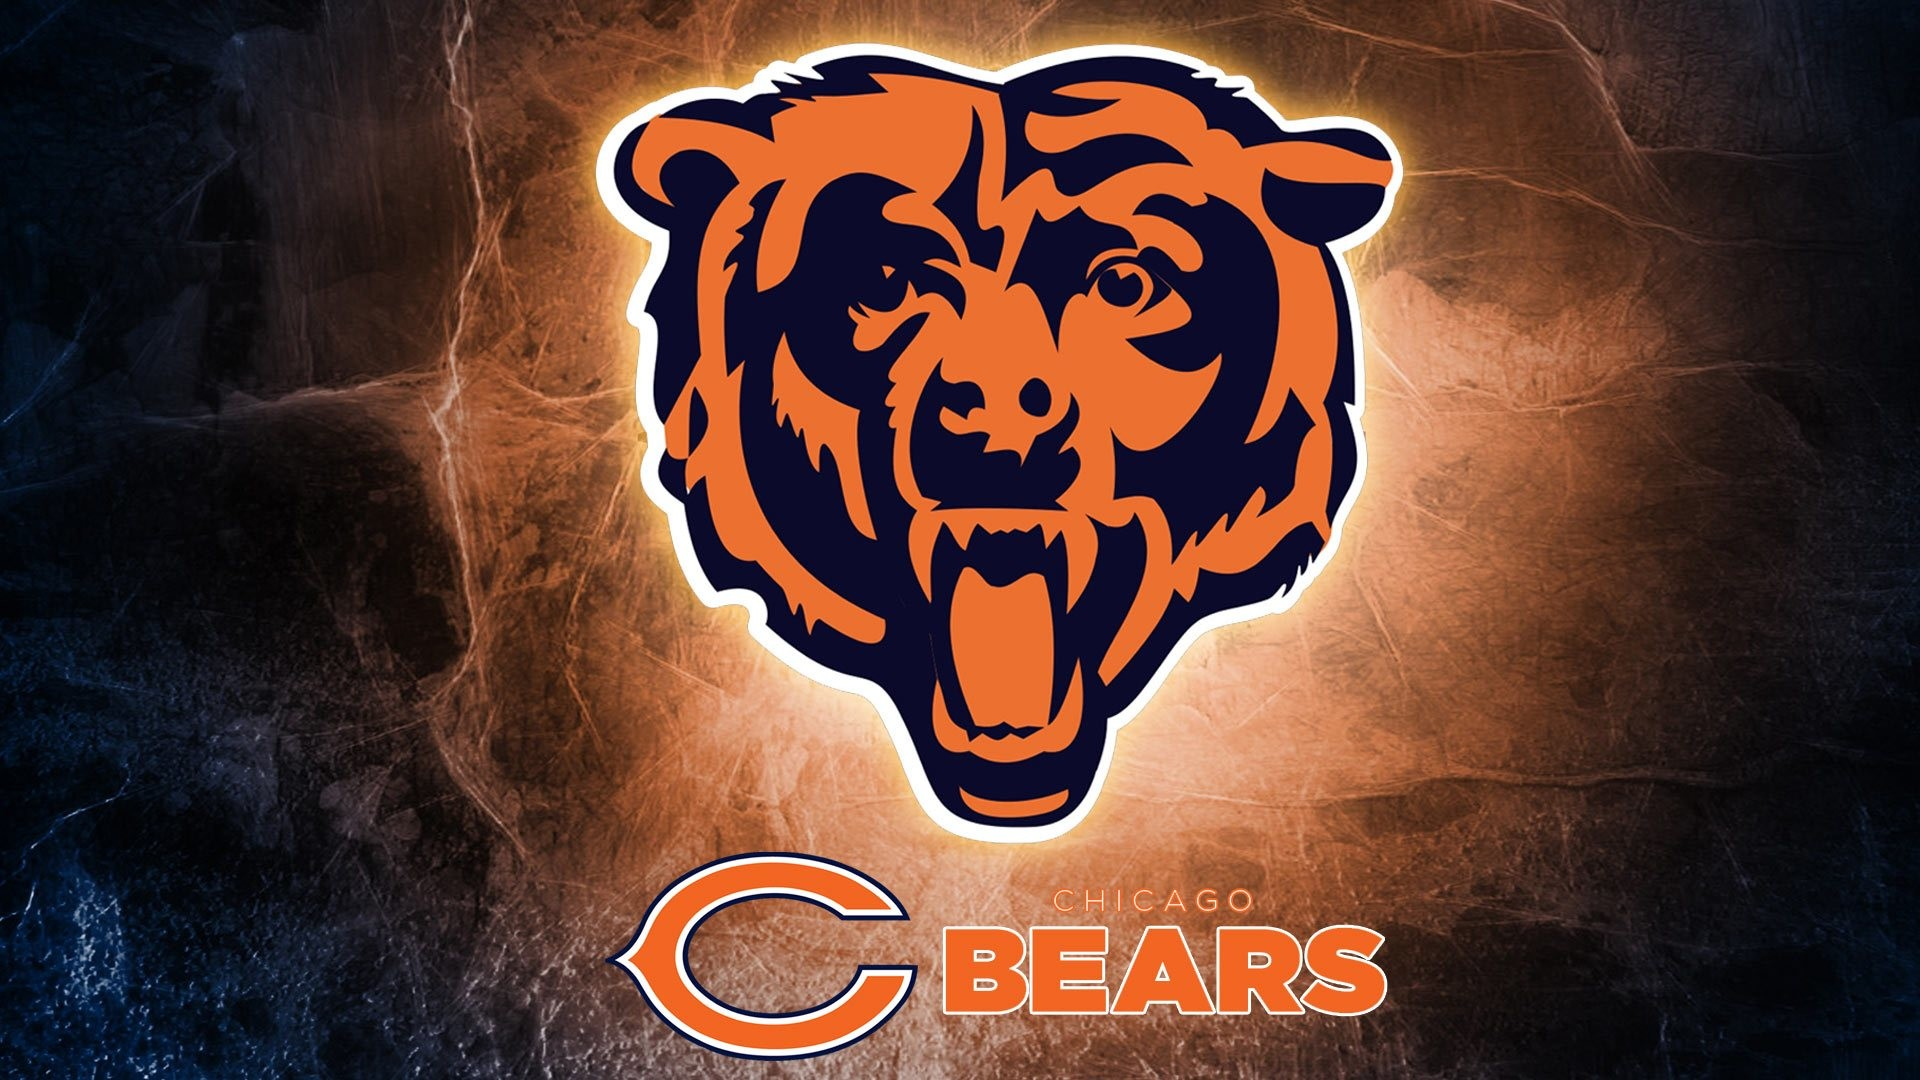 1920x1080 nfl team logos 2014. Chicago Bears logo Hd 1080p high quality Wallpaper  screen size 1920X1080